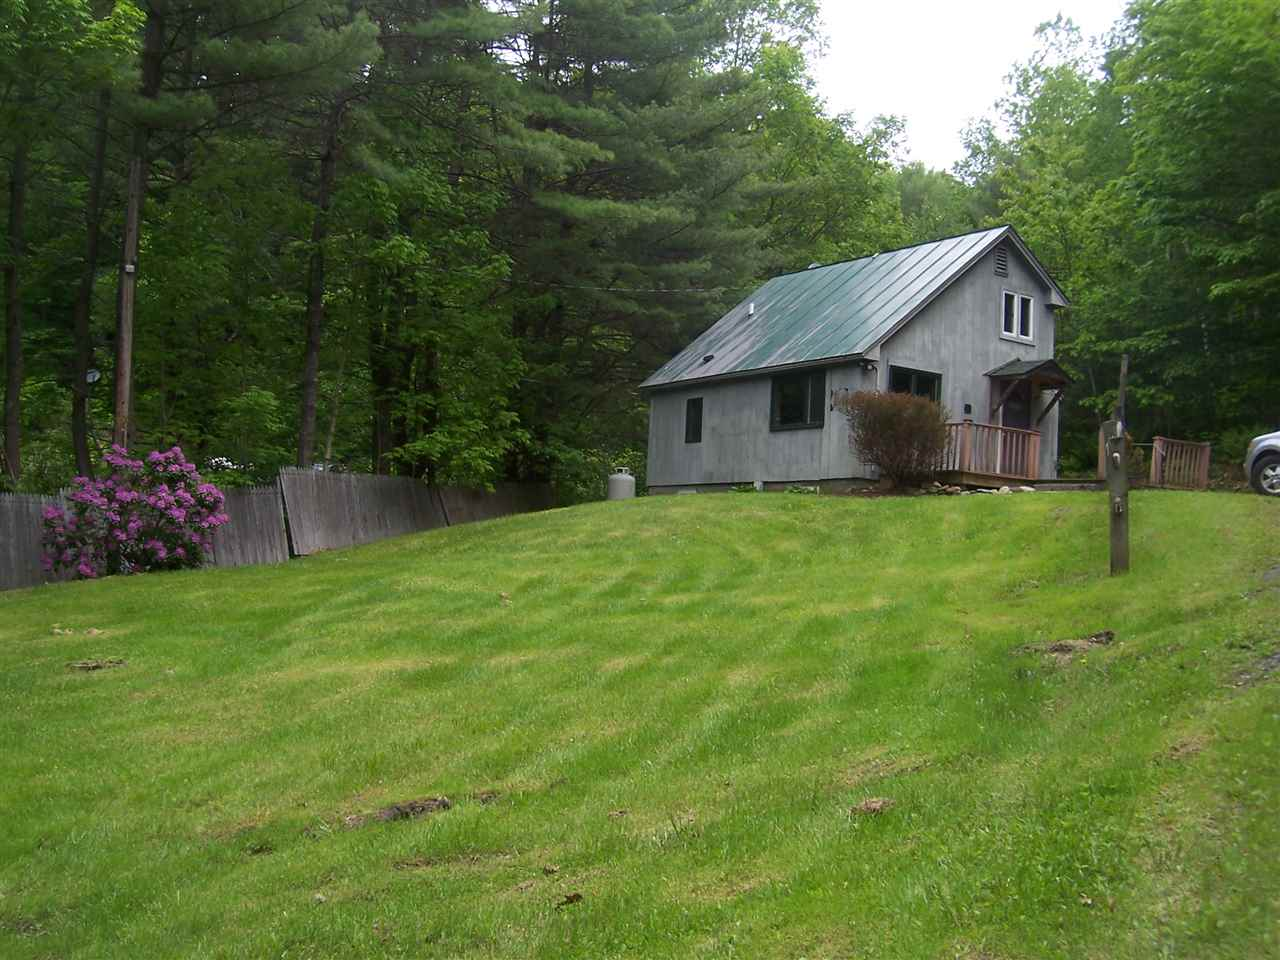 image of Hartford VT Home | sq.ft. 2100